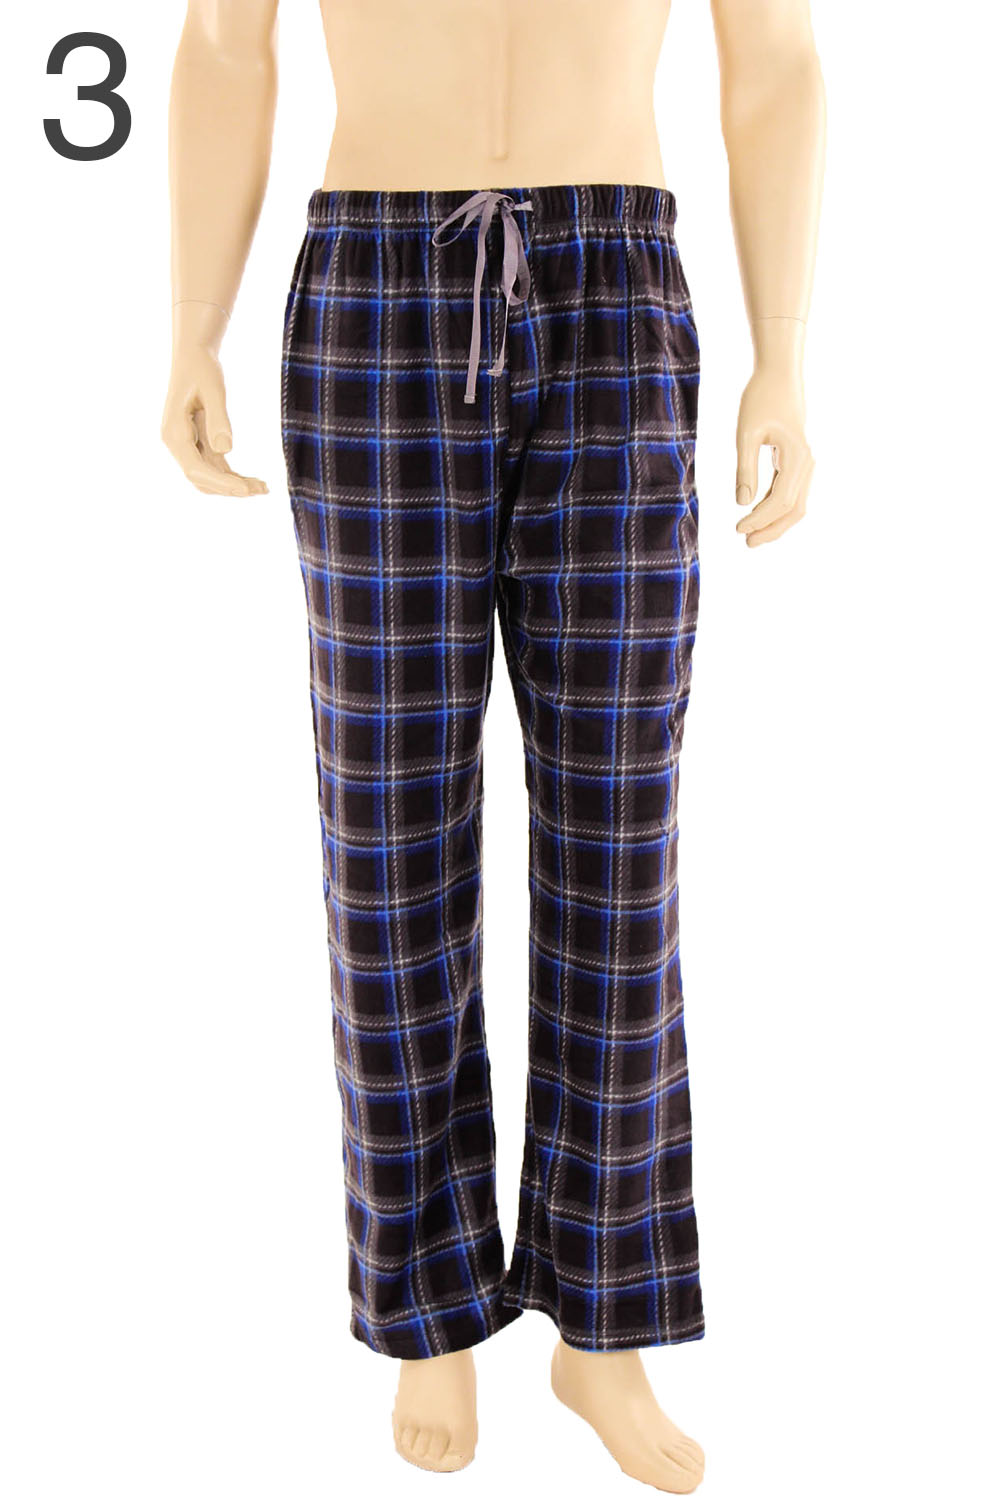 Find great deals on eBay for pajamas bottoms. Shop with confidence.